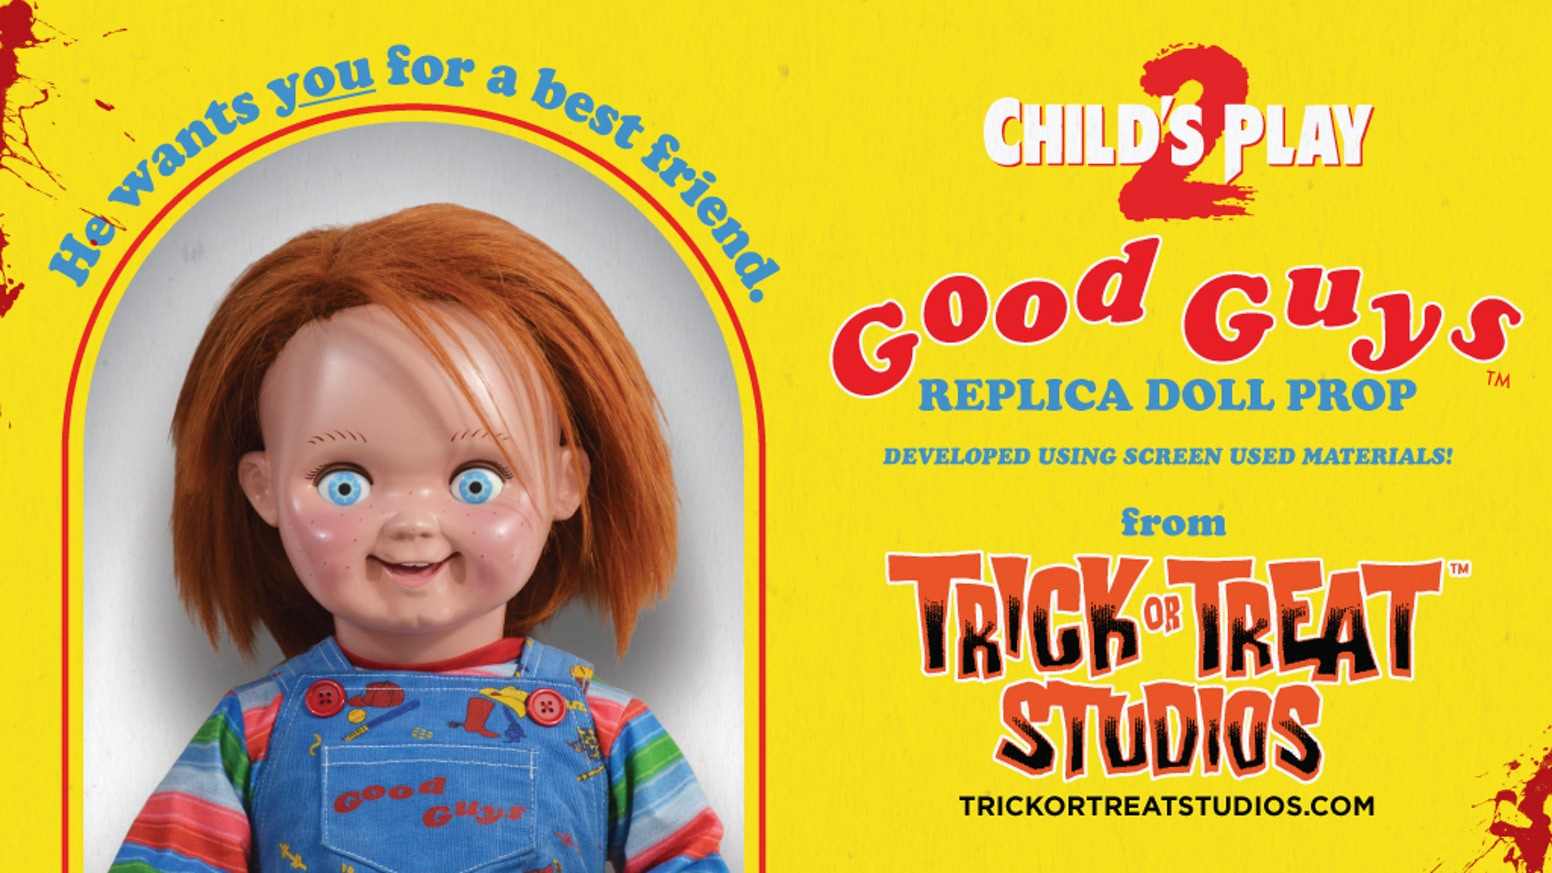 Officially Licensed Child's Play 2 - Chucky Doll is the top crowdfunding project launched today. Officially Licensed Child's Play 2 - Chucky Doll raised over $742026 from 1323 backers. Other top projects include Aquanautia - The Ultimate Adventure Shorts, Walls, a tale of medieval horror., End of Summer Blues, Brews & Barbecues...